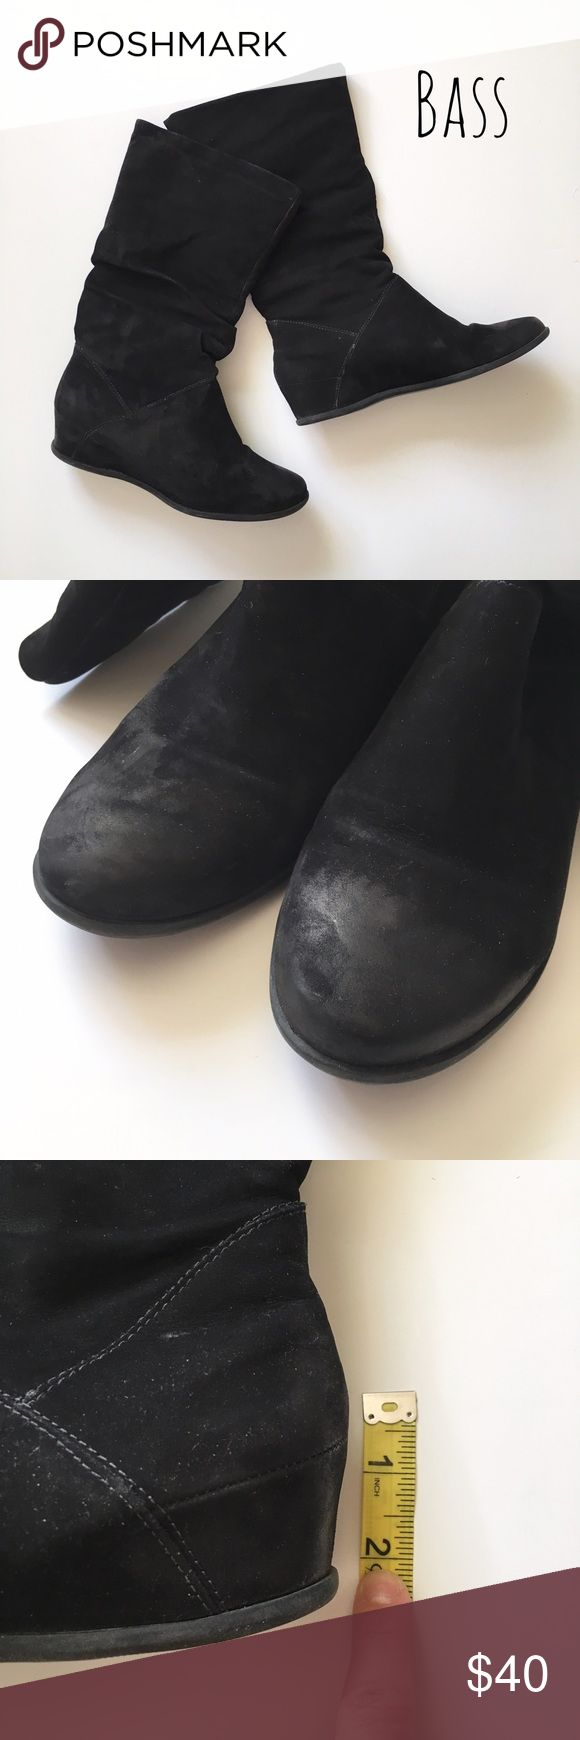 "Black Suede Wedge Boots Black suede wedge winter boots by Bass. ▪️Approx 2"" wedge ▪️Runs a little small, fits closer to a 7 ▪️Comes with original box ▪️In great condition   🚭 Smoke-free home 📬 Ships by next day 💲 Price negotiable  🔁 Open to trades  💟Happy Poshing!💟 Bass Shoes Winter & Rain Boots"